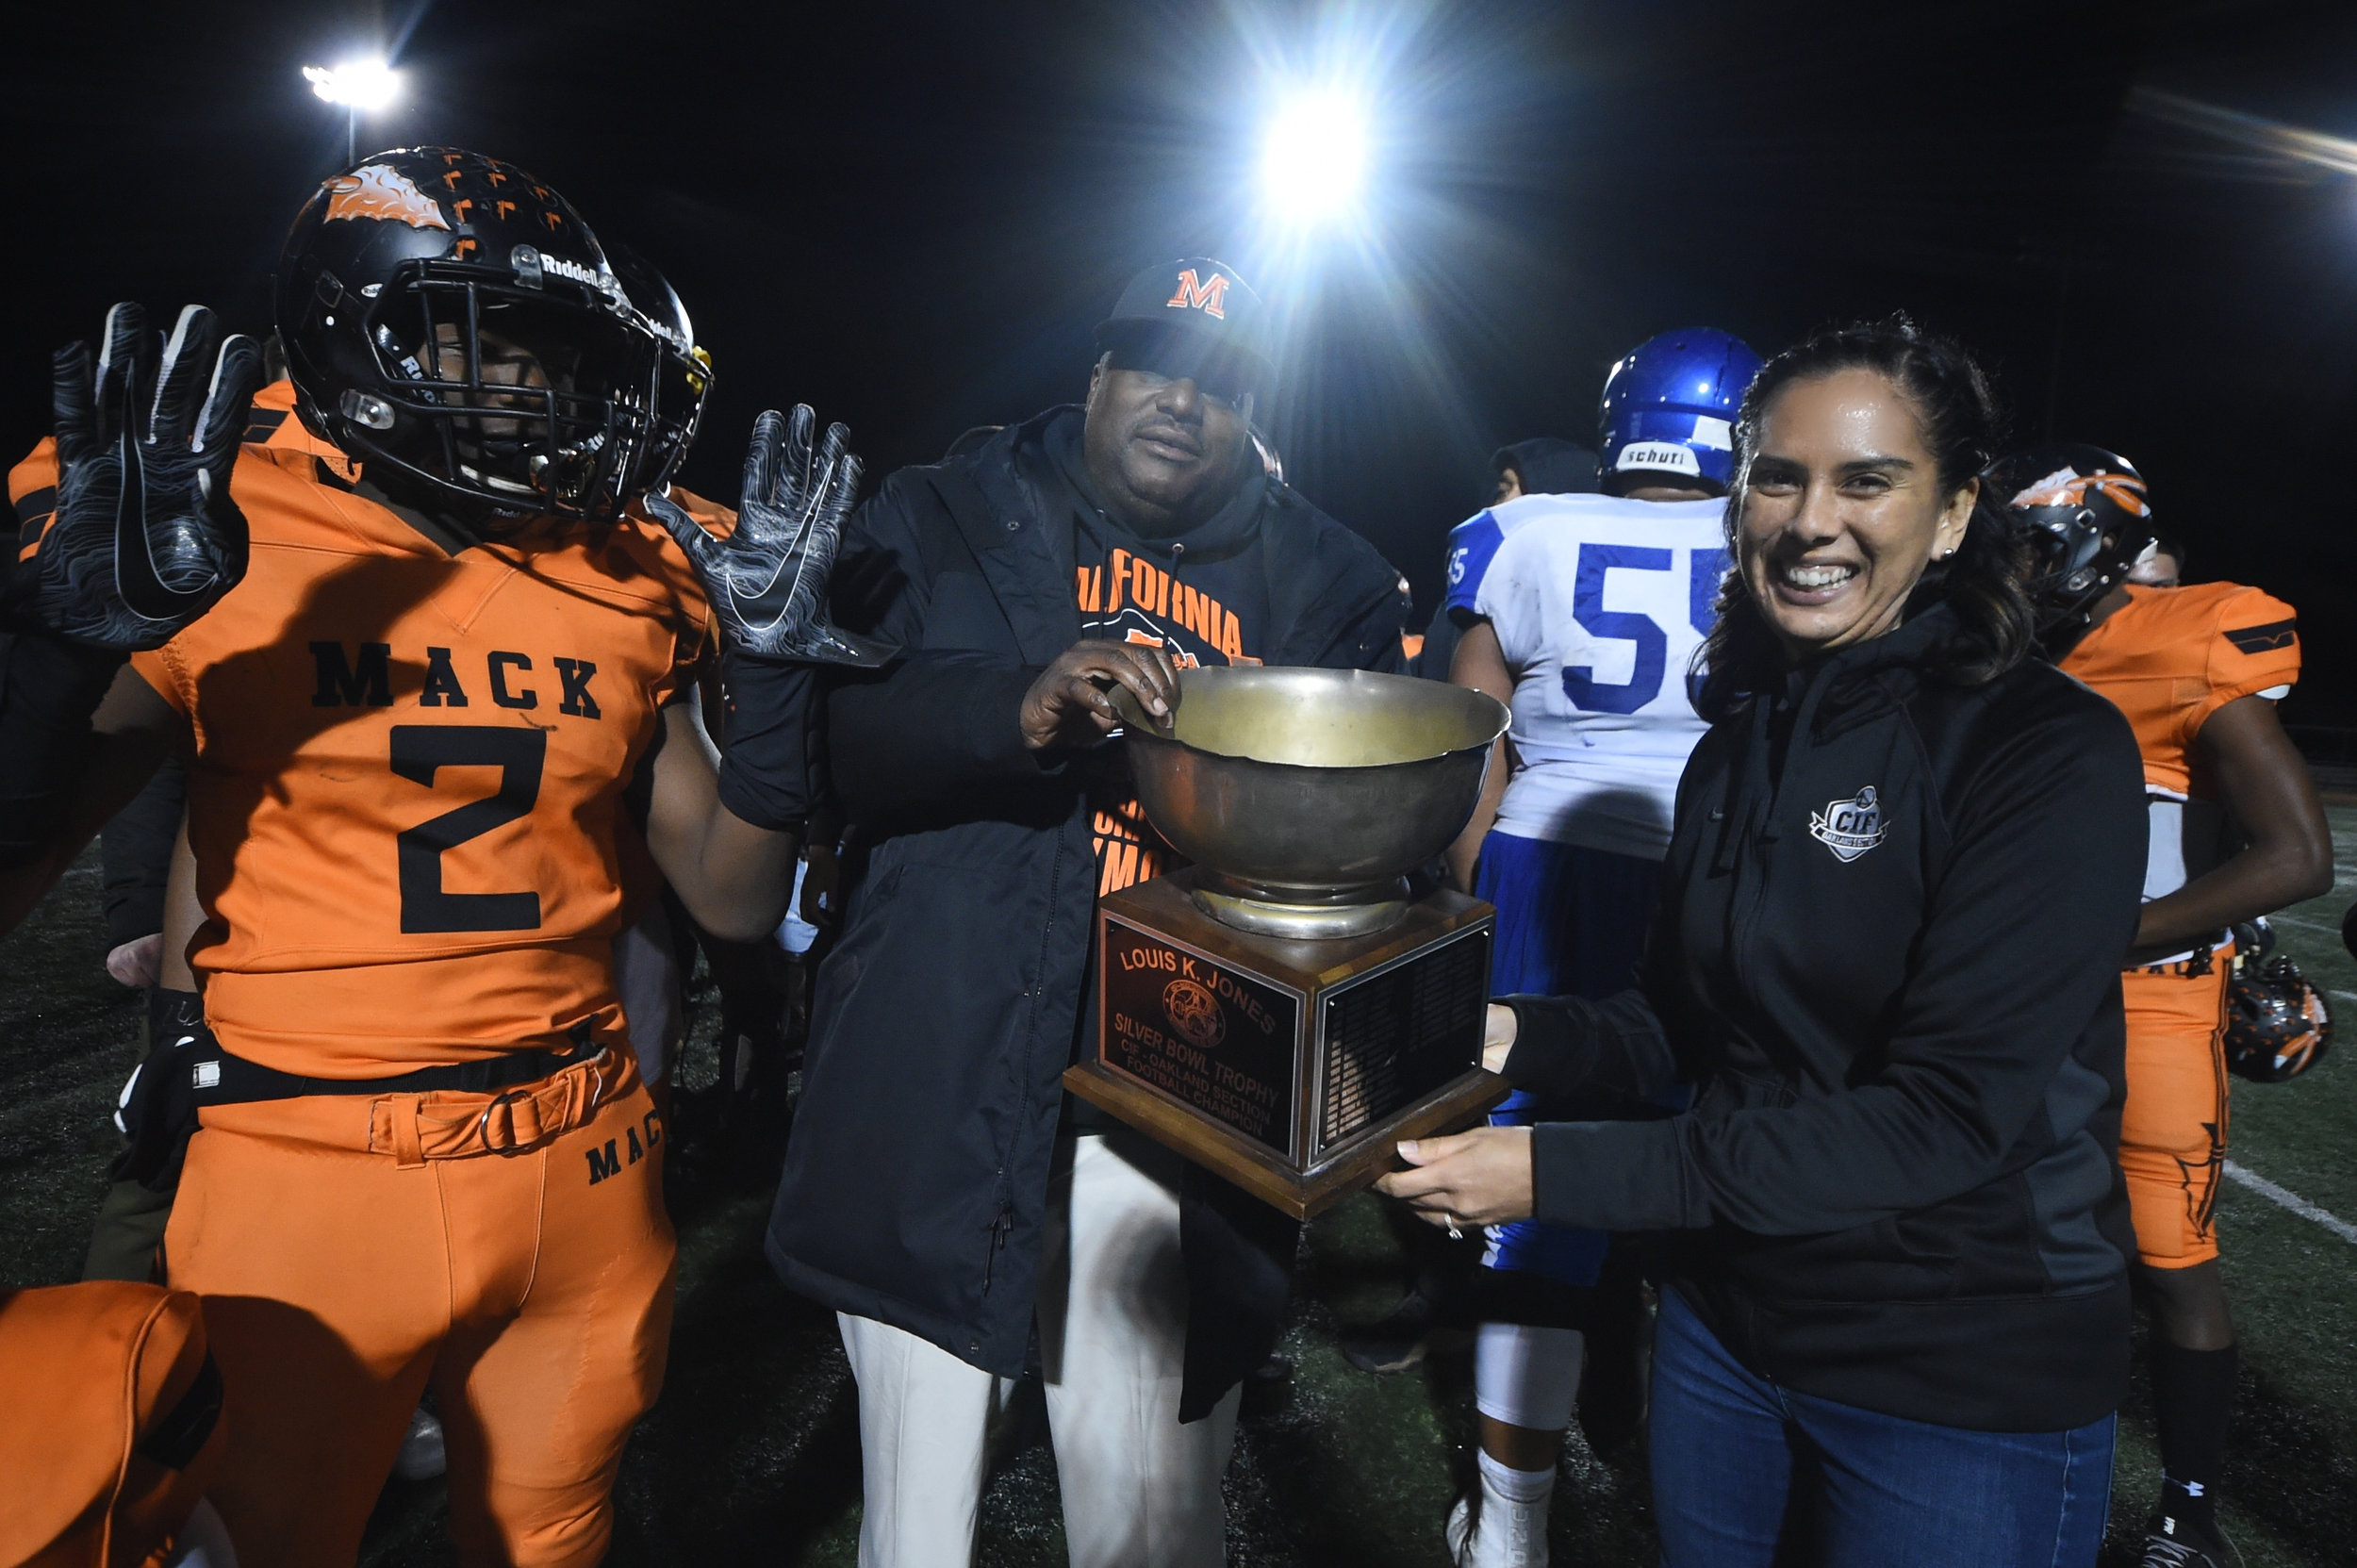 Phillips handing the Silver Bowl trophy to McClymonds High School head football coach after they won the championship.